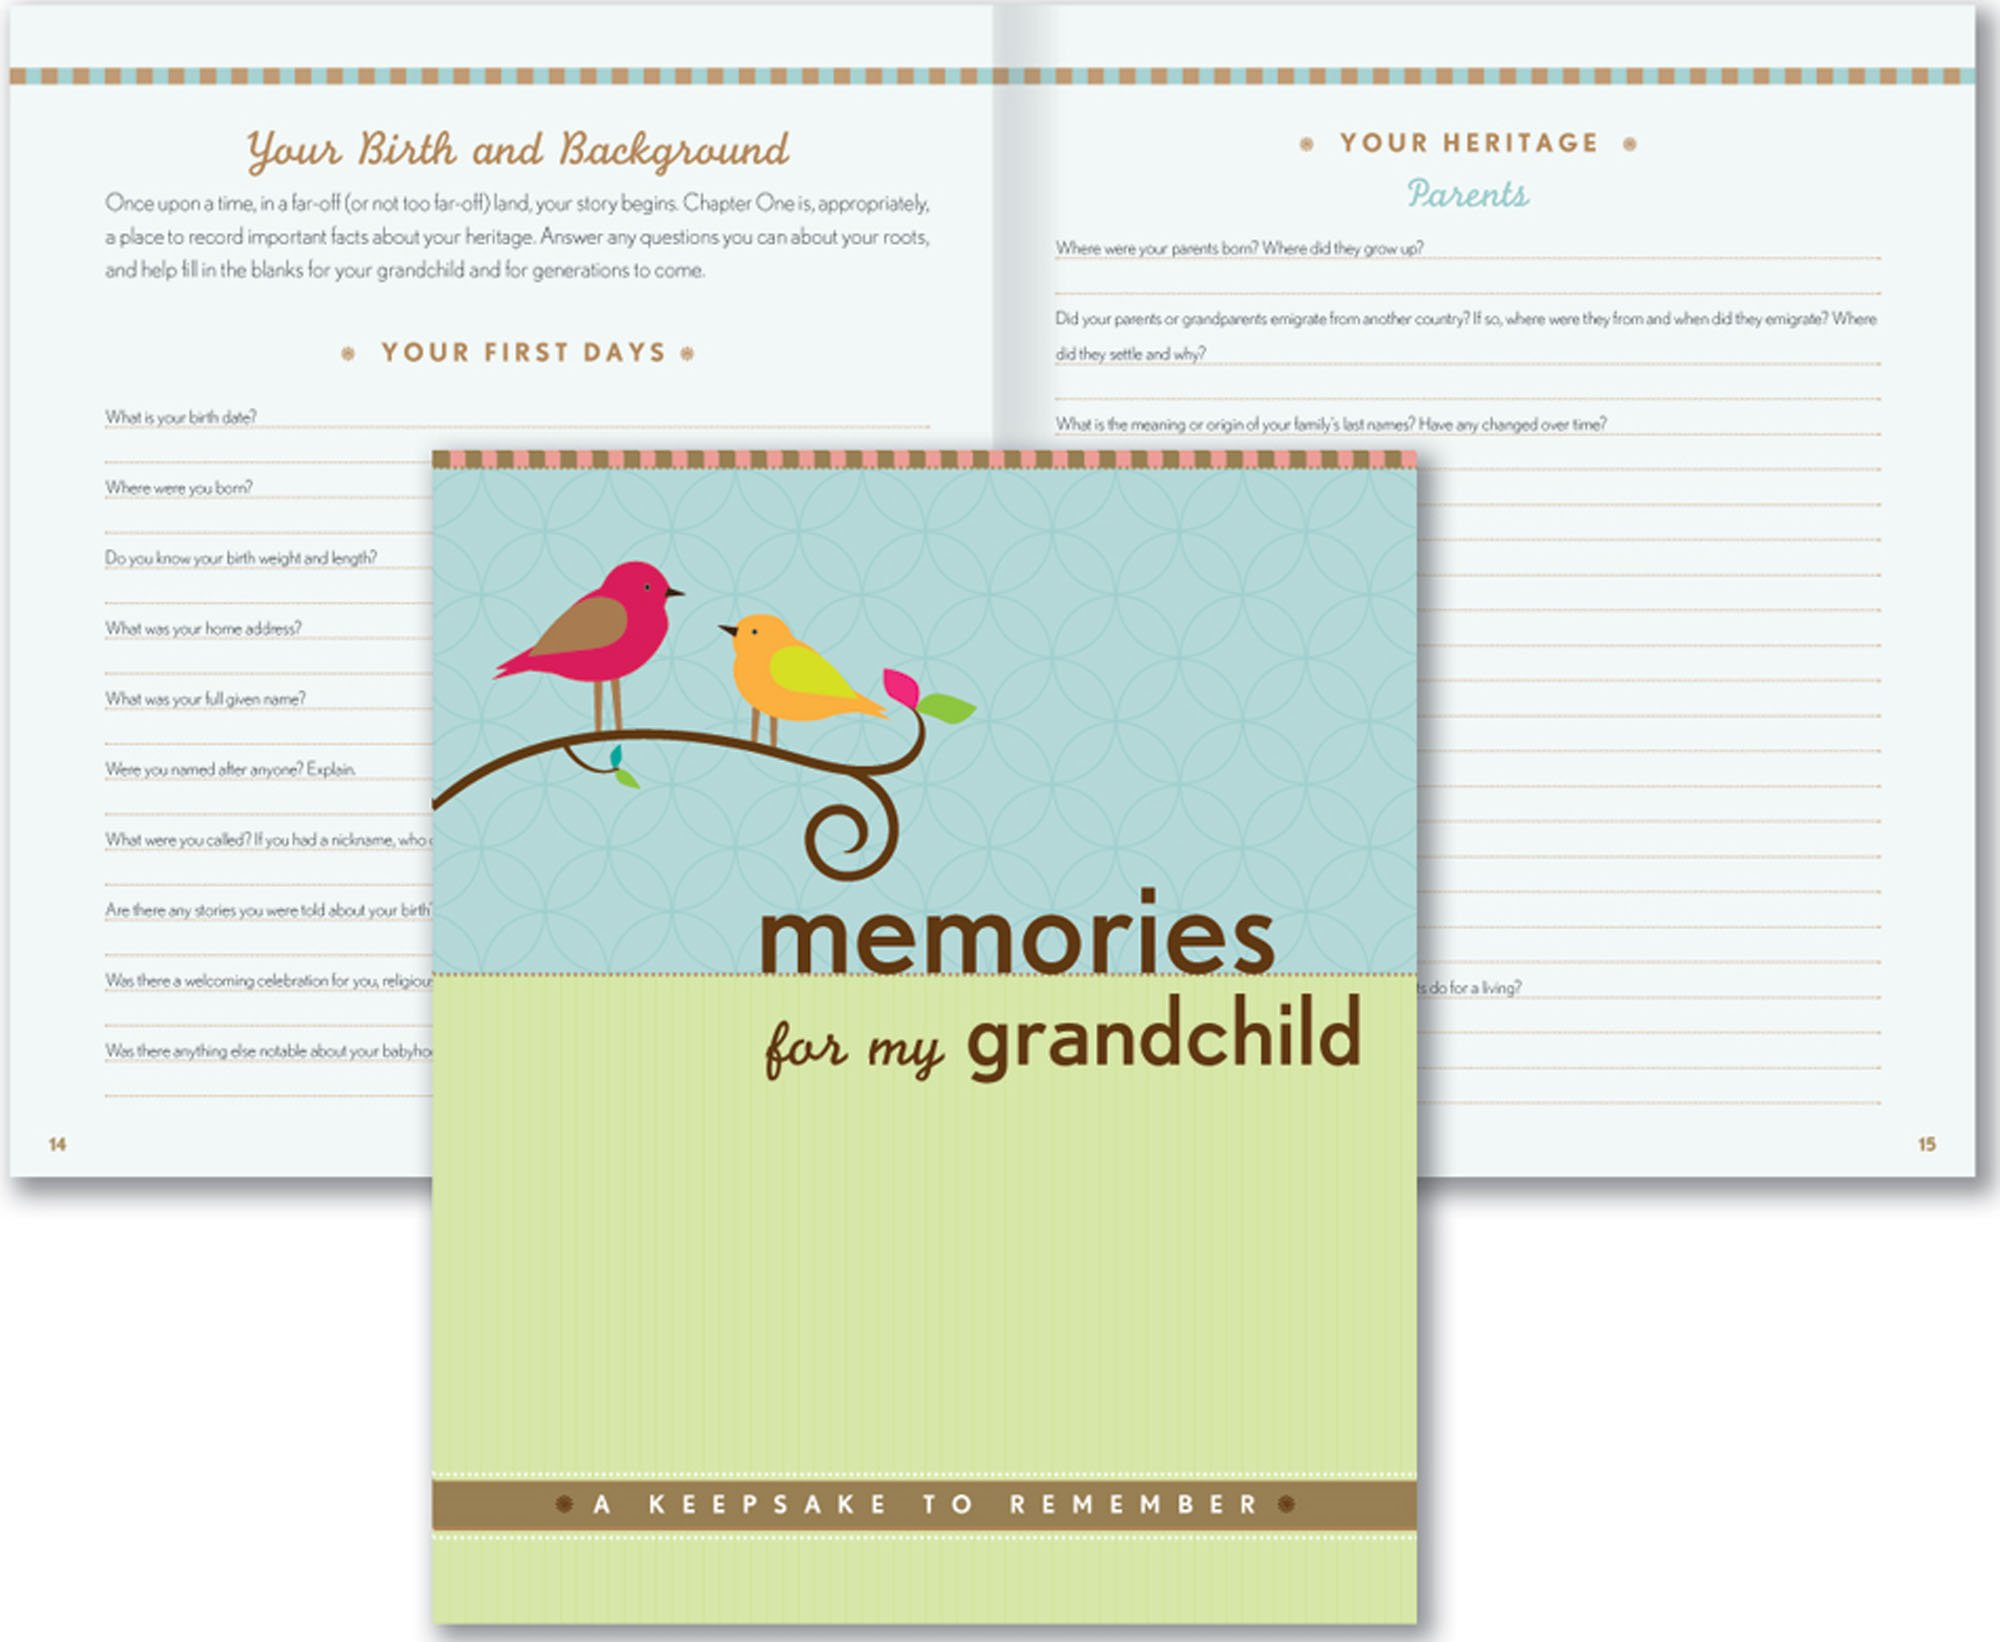 Memories For My Grandchild: A Keepsake To Remember (Grandparentu0027s Memory  Book): Suzanne Zenkel, Margaret Rubiano: 8601400367278: Amazon.com: Books